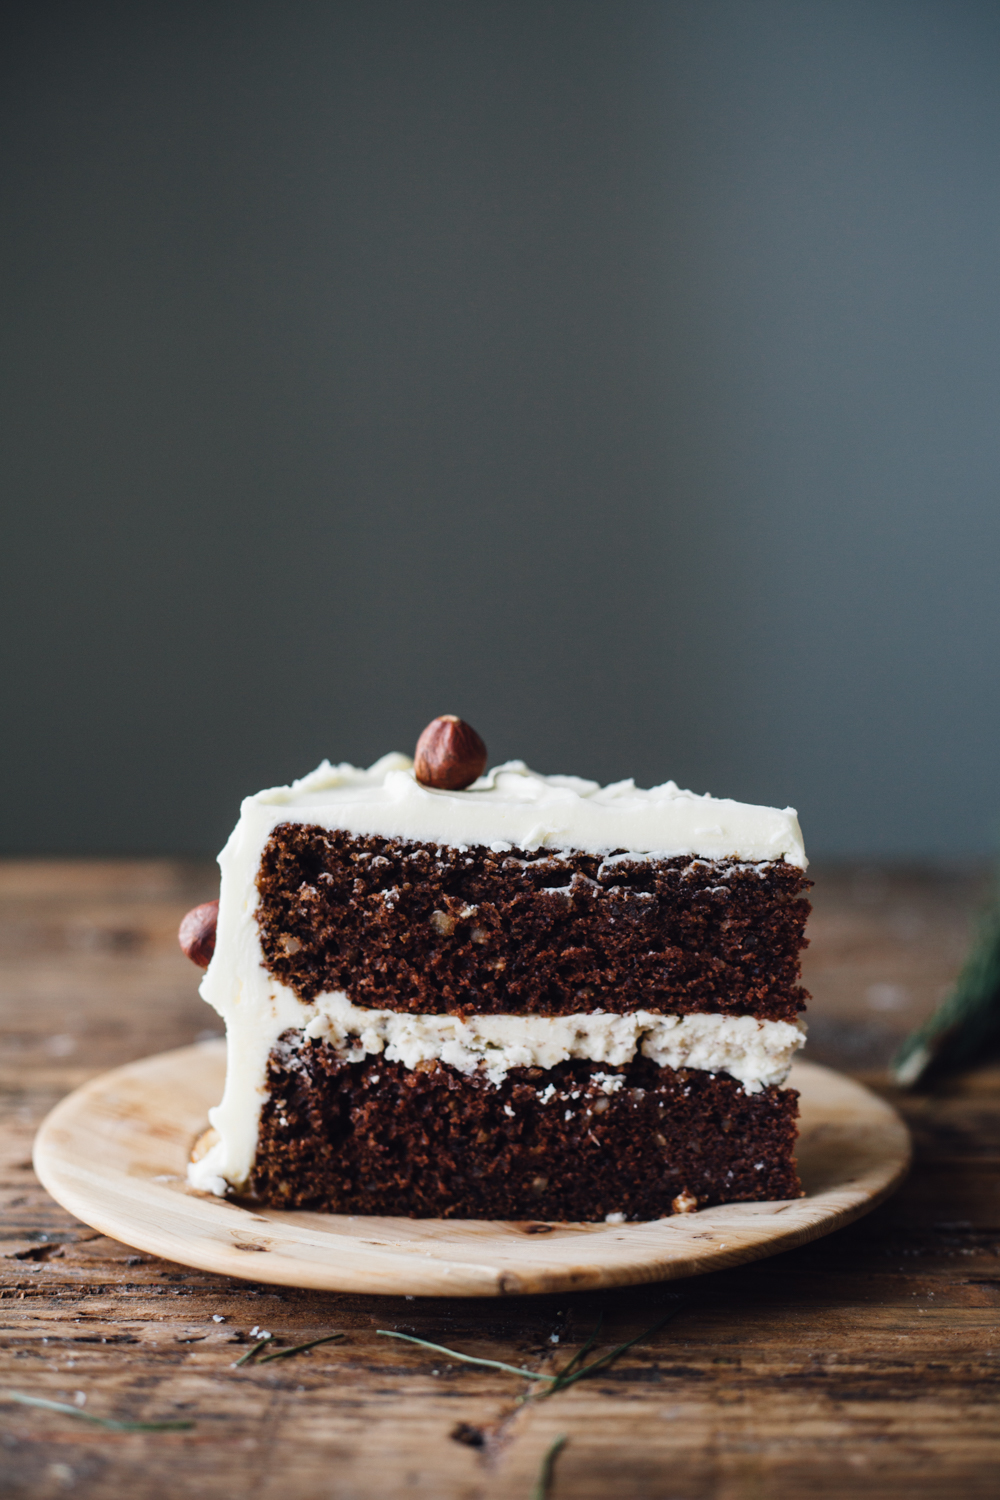 chocolate-hazelnut-cake-26.jpg